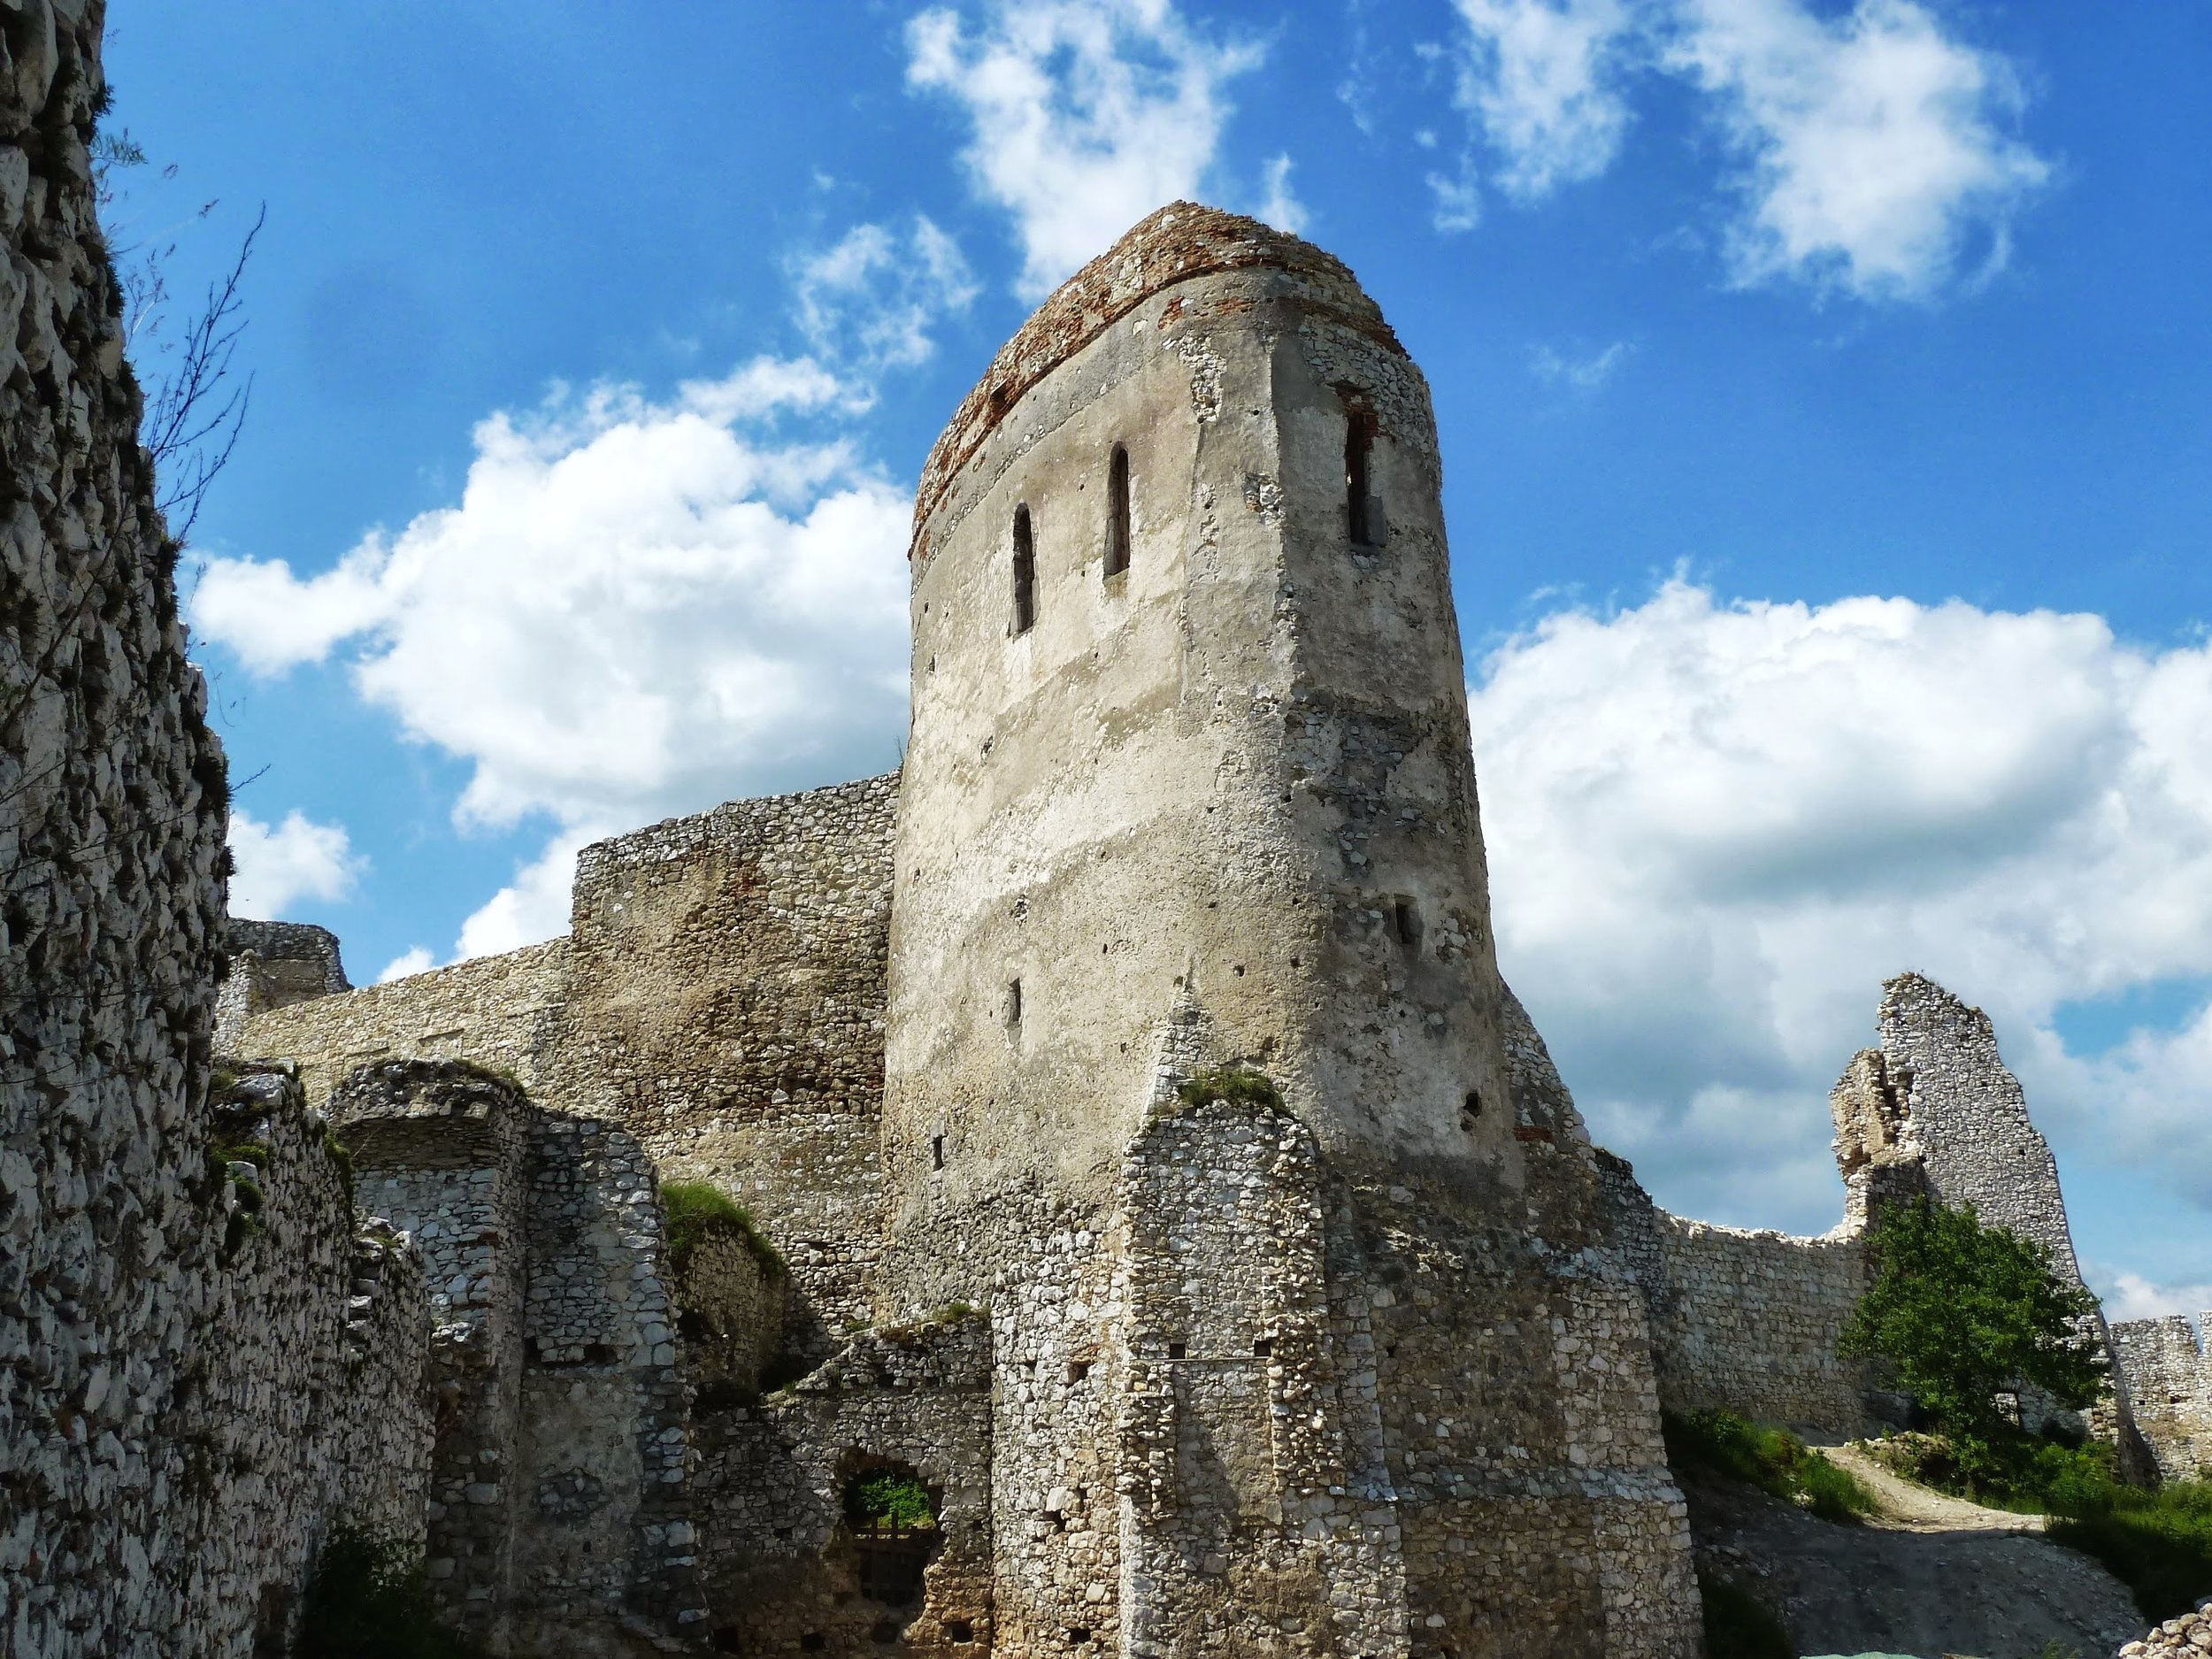 Main tower at Cachtice Castle, Slovakia.  Photo by  Jacomoman78  -  CC BY-SA 3.0